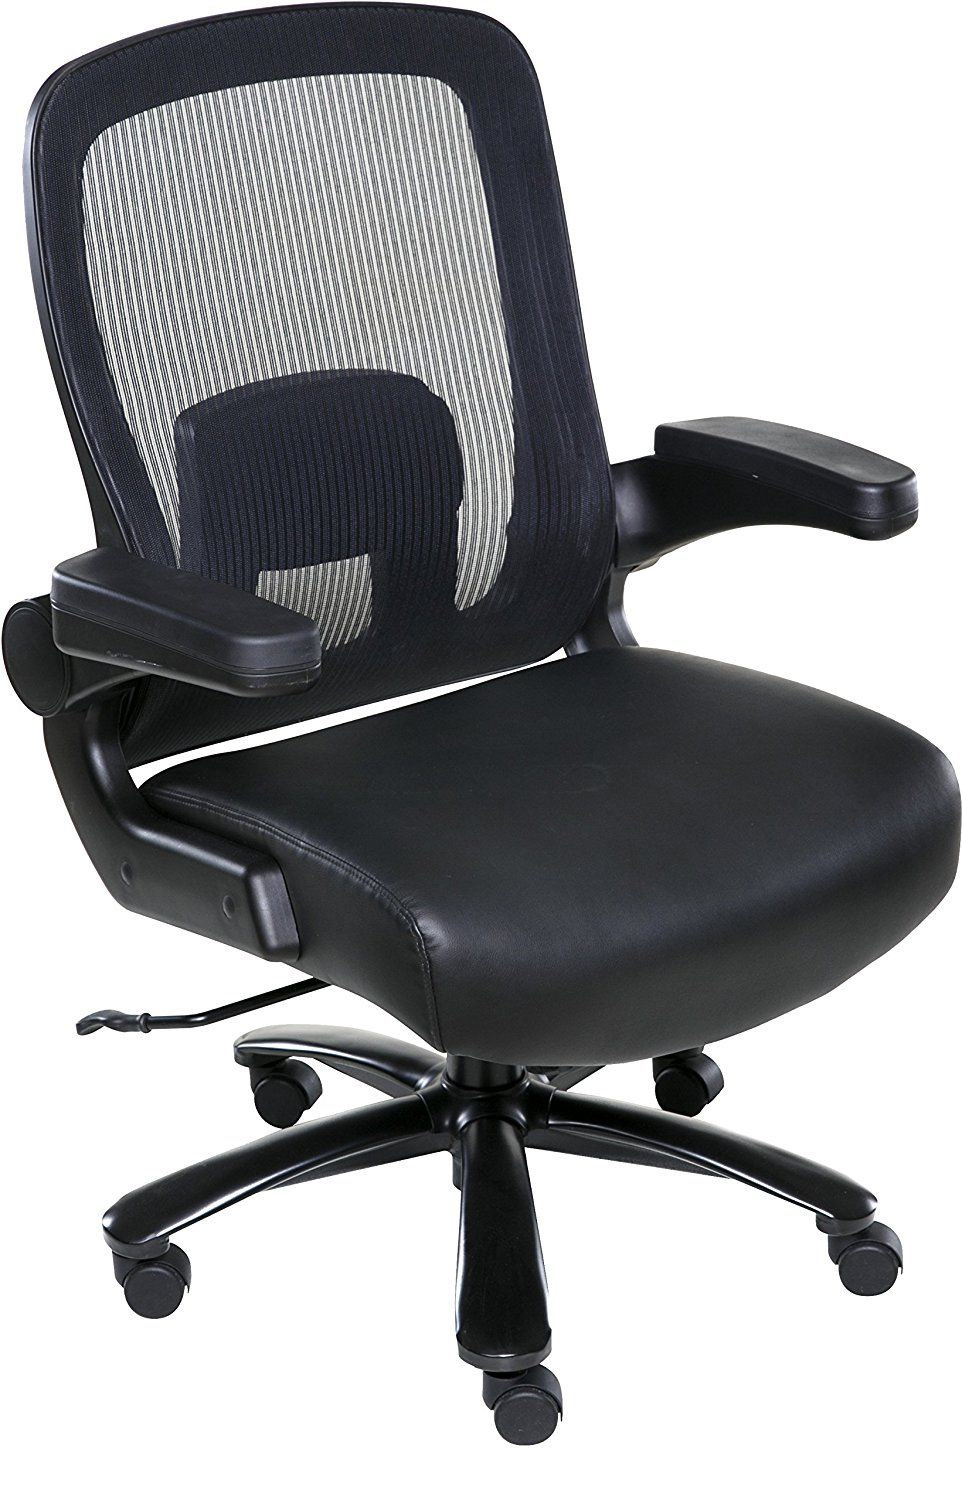 best big and tall office chairs 2018 desk chair casters for hardwood floors pin by prtha lastnight on room ideas low budget executive reviews home furniture check more at http